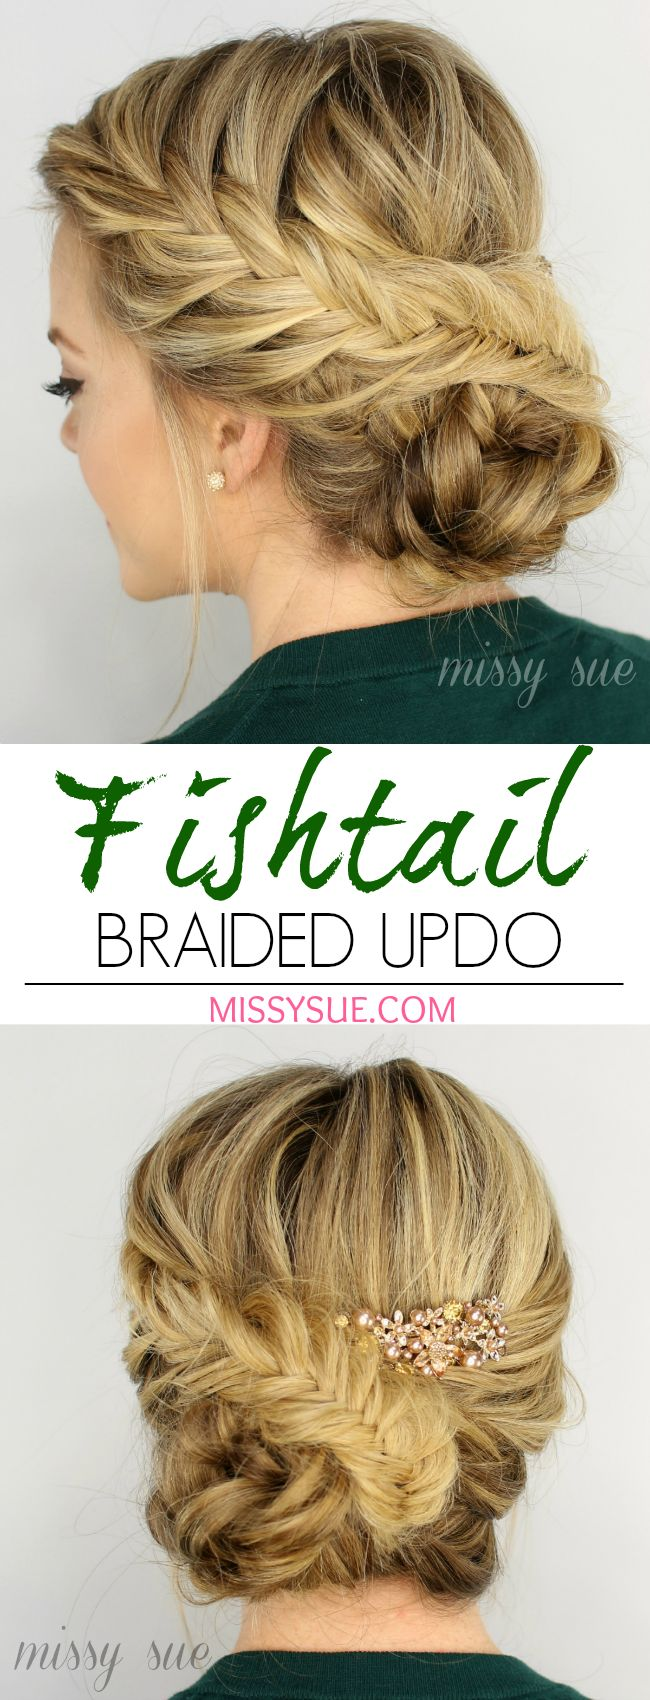 21 All-New French Braid Updo Hairstyles advise